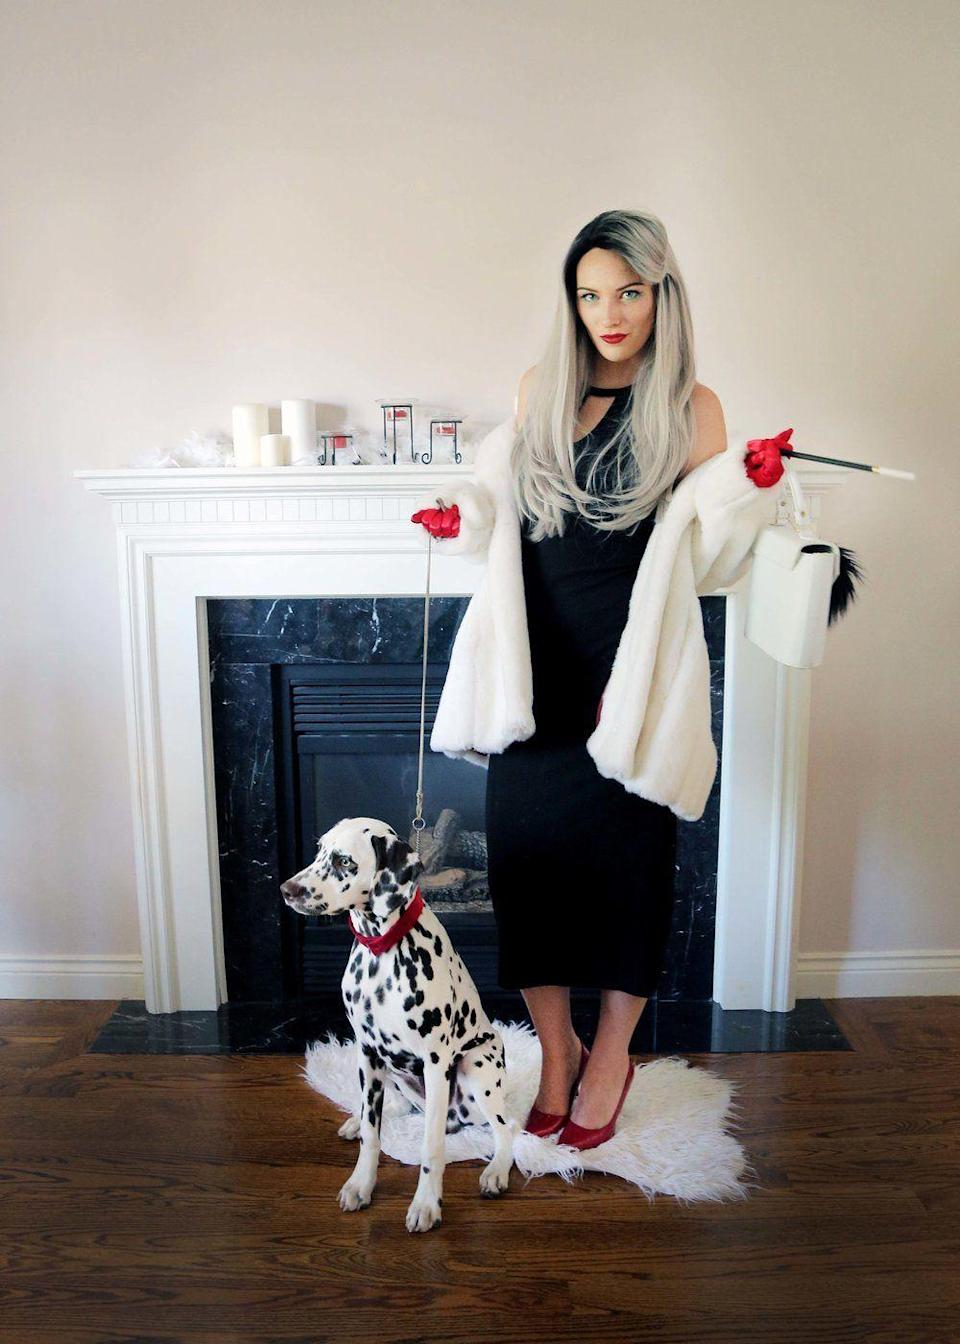 """<p>This sleek update on the Disney villainess includes a thrift store faux fur and a purse with black-and-white pom poms. It's so stunning you don't even need the dalmatian.</p><p><strong>Get the tutorial at <a href=""""https://www.thesorrygirls.com/lifestyle/cruella-de-vil-costume-tutorial"""" rel=""""nofollow noopener"""" target=""""_blank"""" data-ylk=""""slk:The Sorry Girls"""" class=""""link rapid-noclick-resp"""">The Sorry Girls</a>.</strong></p><p><a class=""""link rapid-noclick-resp"""" href=""""https://www.amazon.com/SAVITA-Elbow-Gloves-Stretchy-Evening/dp/B07NY7DVBL/ref=asc_df_B07NY7DVBL/?tag=syn-yahoo-20&ascsubtag=%5Bartid%7C10050.g.36674692%5Bsrc%7Cyahoo-us"""" rel=""""nofollow noopener"""" target=""""_blank"""" data-ylk=""""slk:SHOP RED SATIN GLOVES"""">SHOP RED SATIN GLOVES</a><br></p>"""